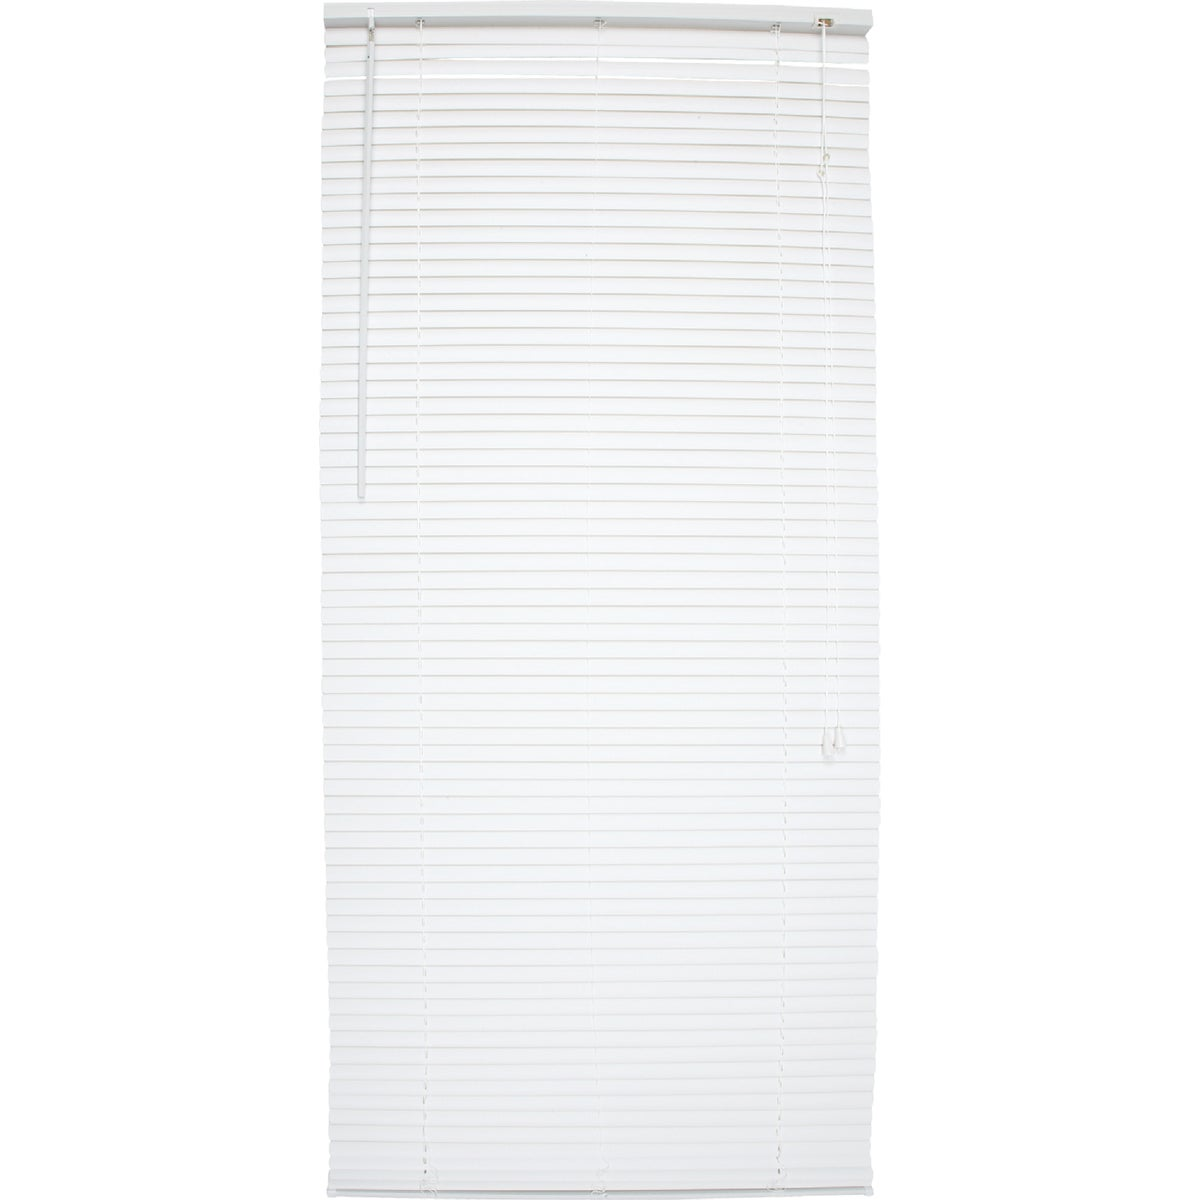 38X64 WHITE MINI BLIND - 615249 by Lotus Wind Incom